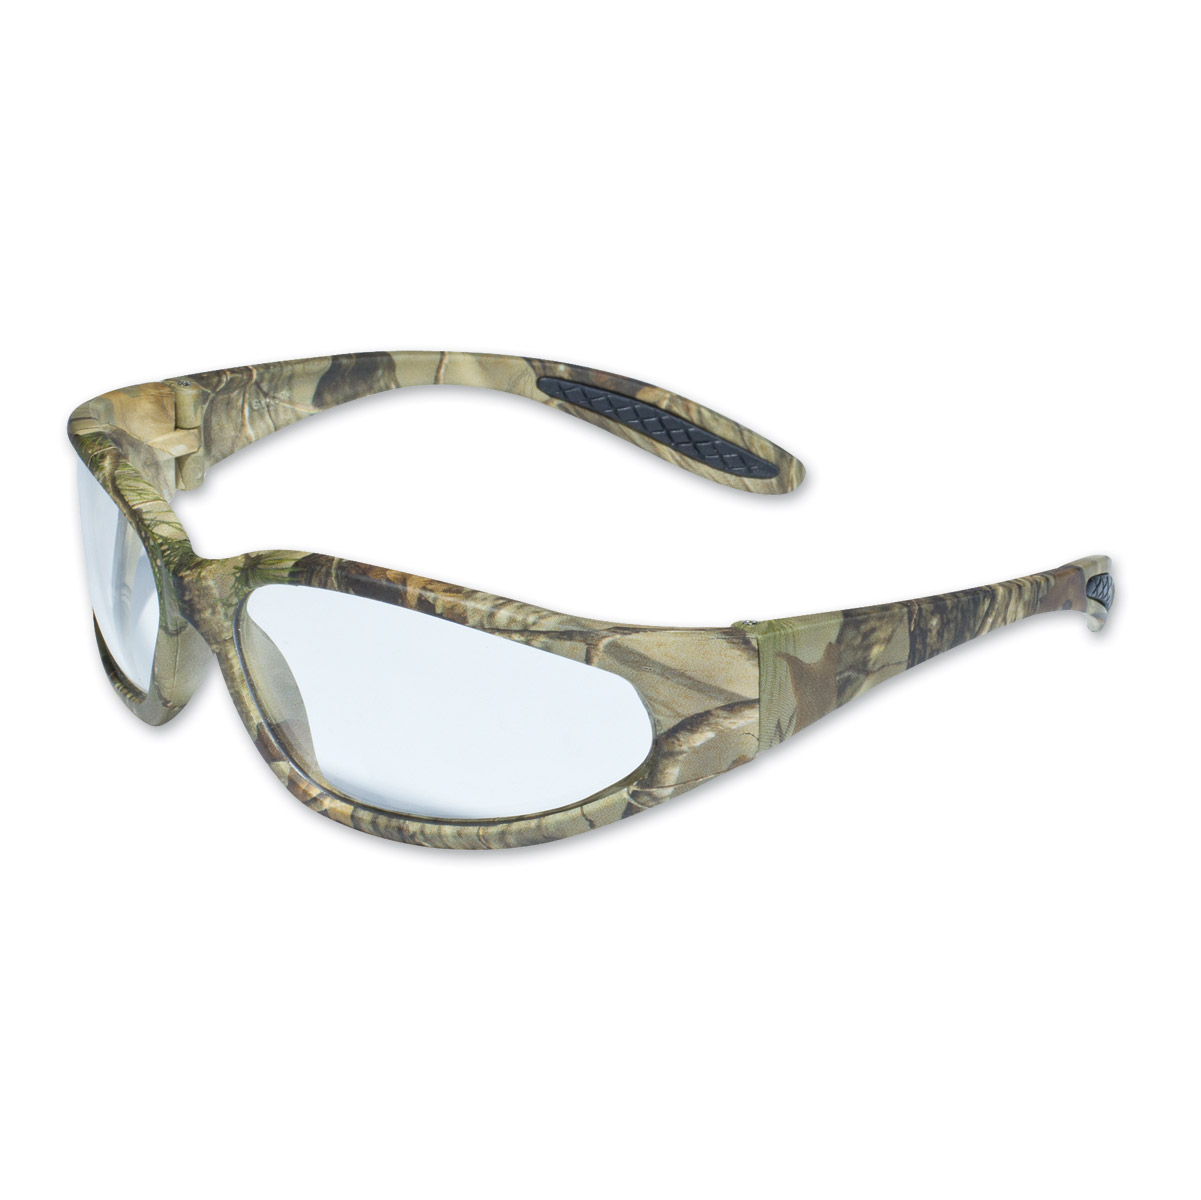 Global Vision Forest 1 Sonnenbrille Y5oM1vTJ